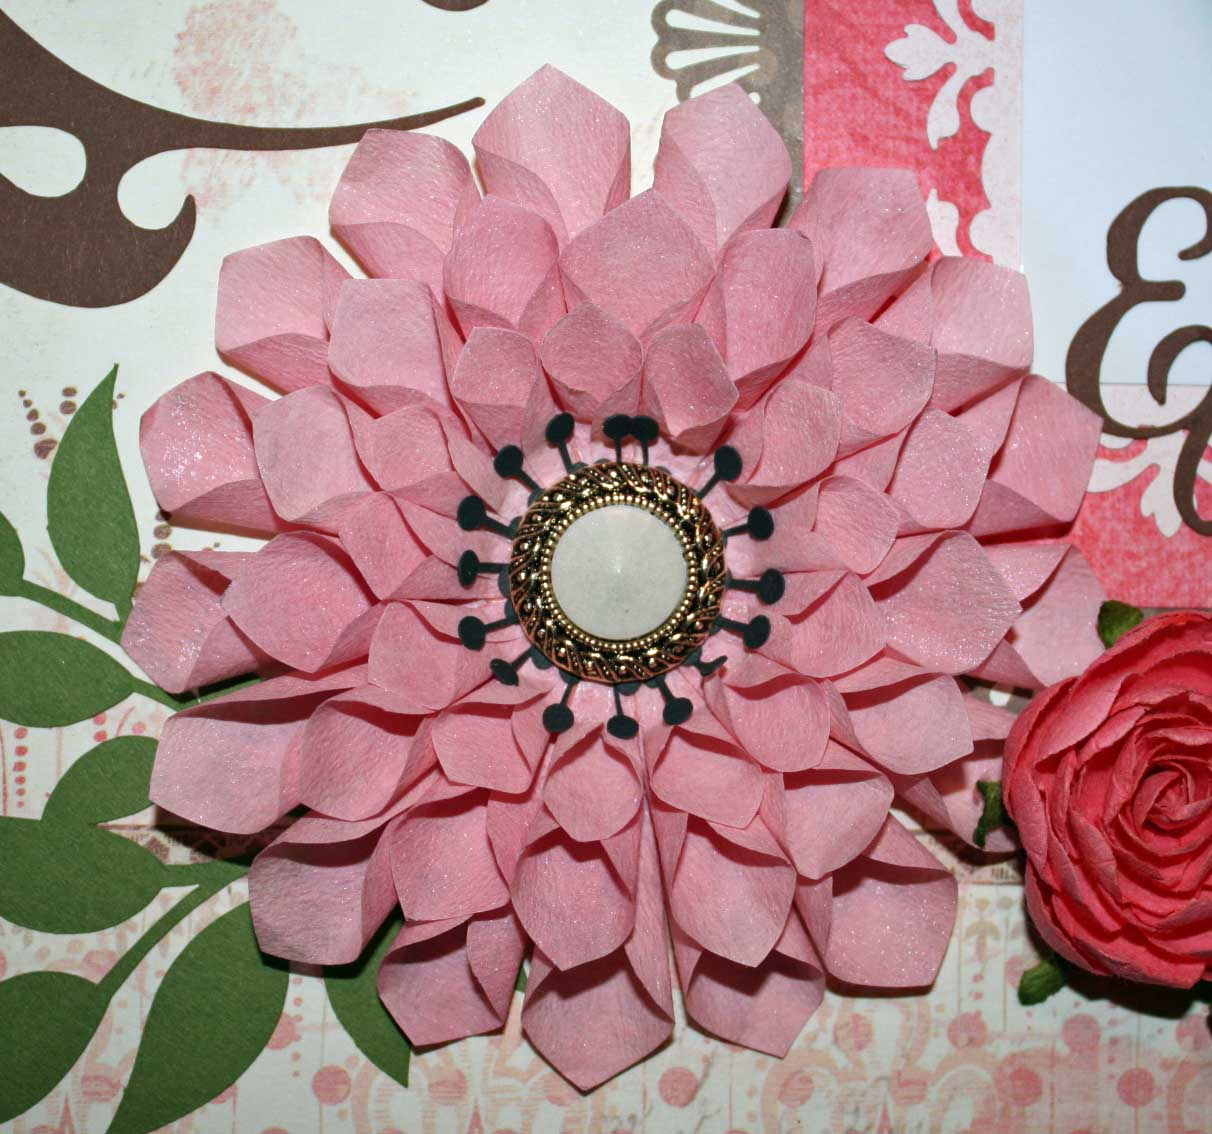 How To Make Handmade Flowers From Paper Ideas For Scrapbookers A Handmade Dahlia For Your Pages